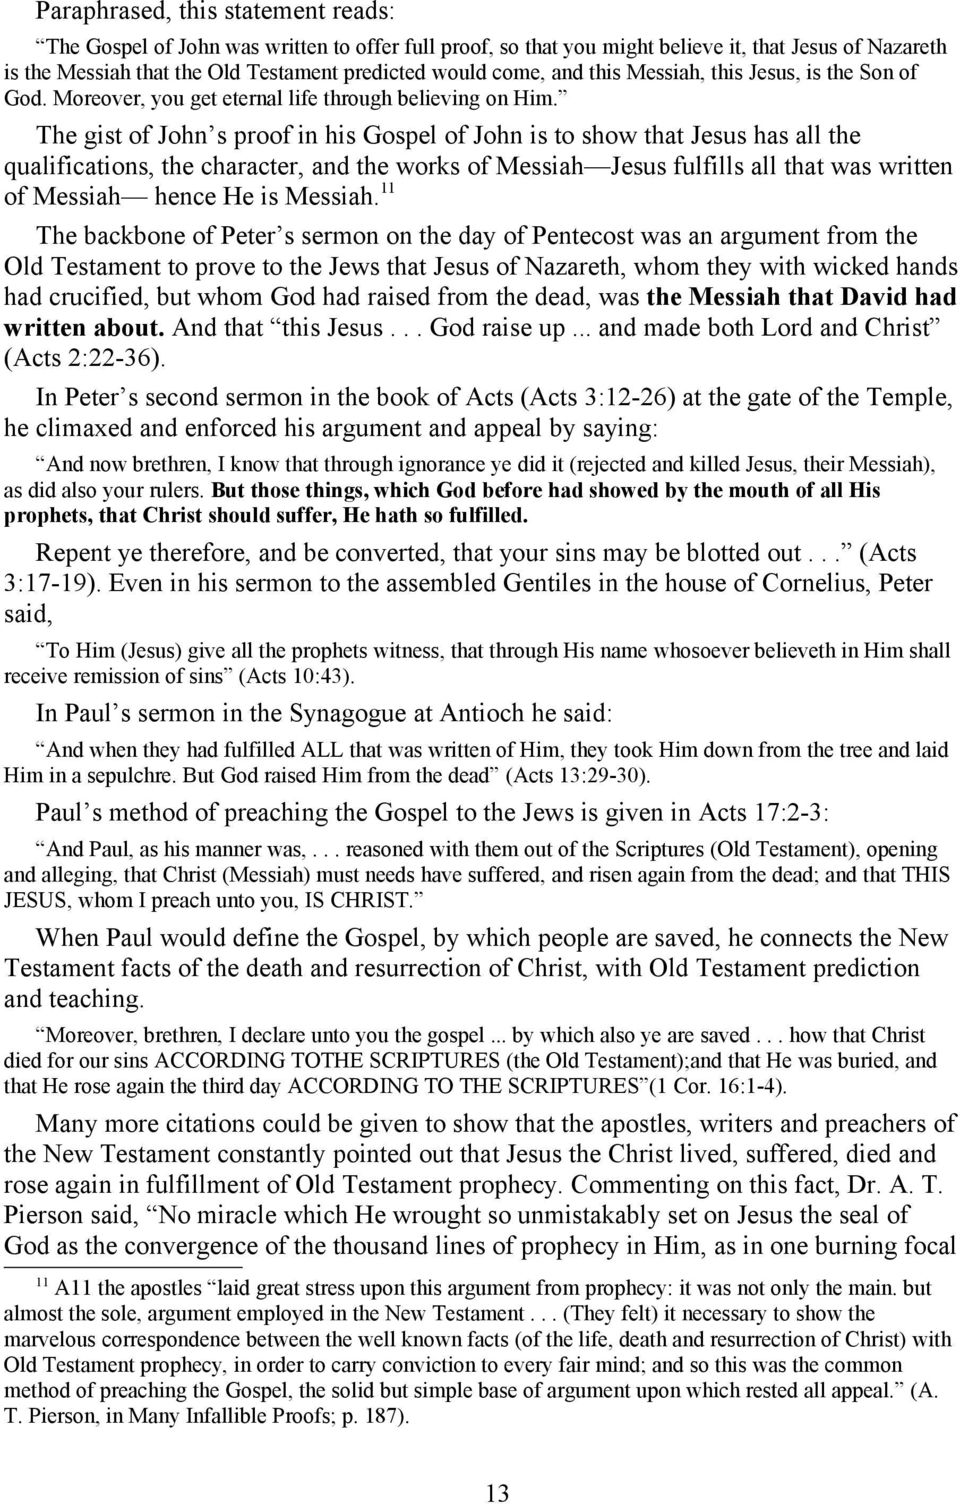 The gist of John s proof in his Gospel of John is to show that Jesus has all the qualifications, the character, and the works of Messiah Jesus fulfills all that was written of Messiah hence He is